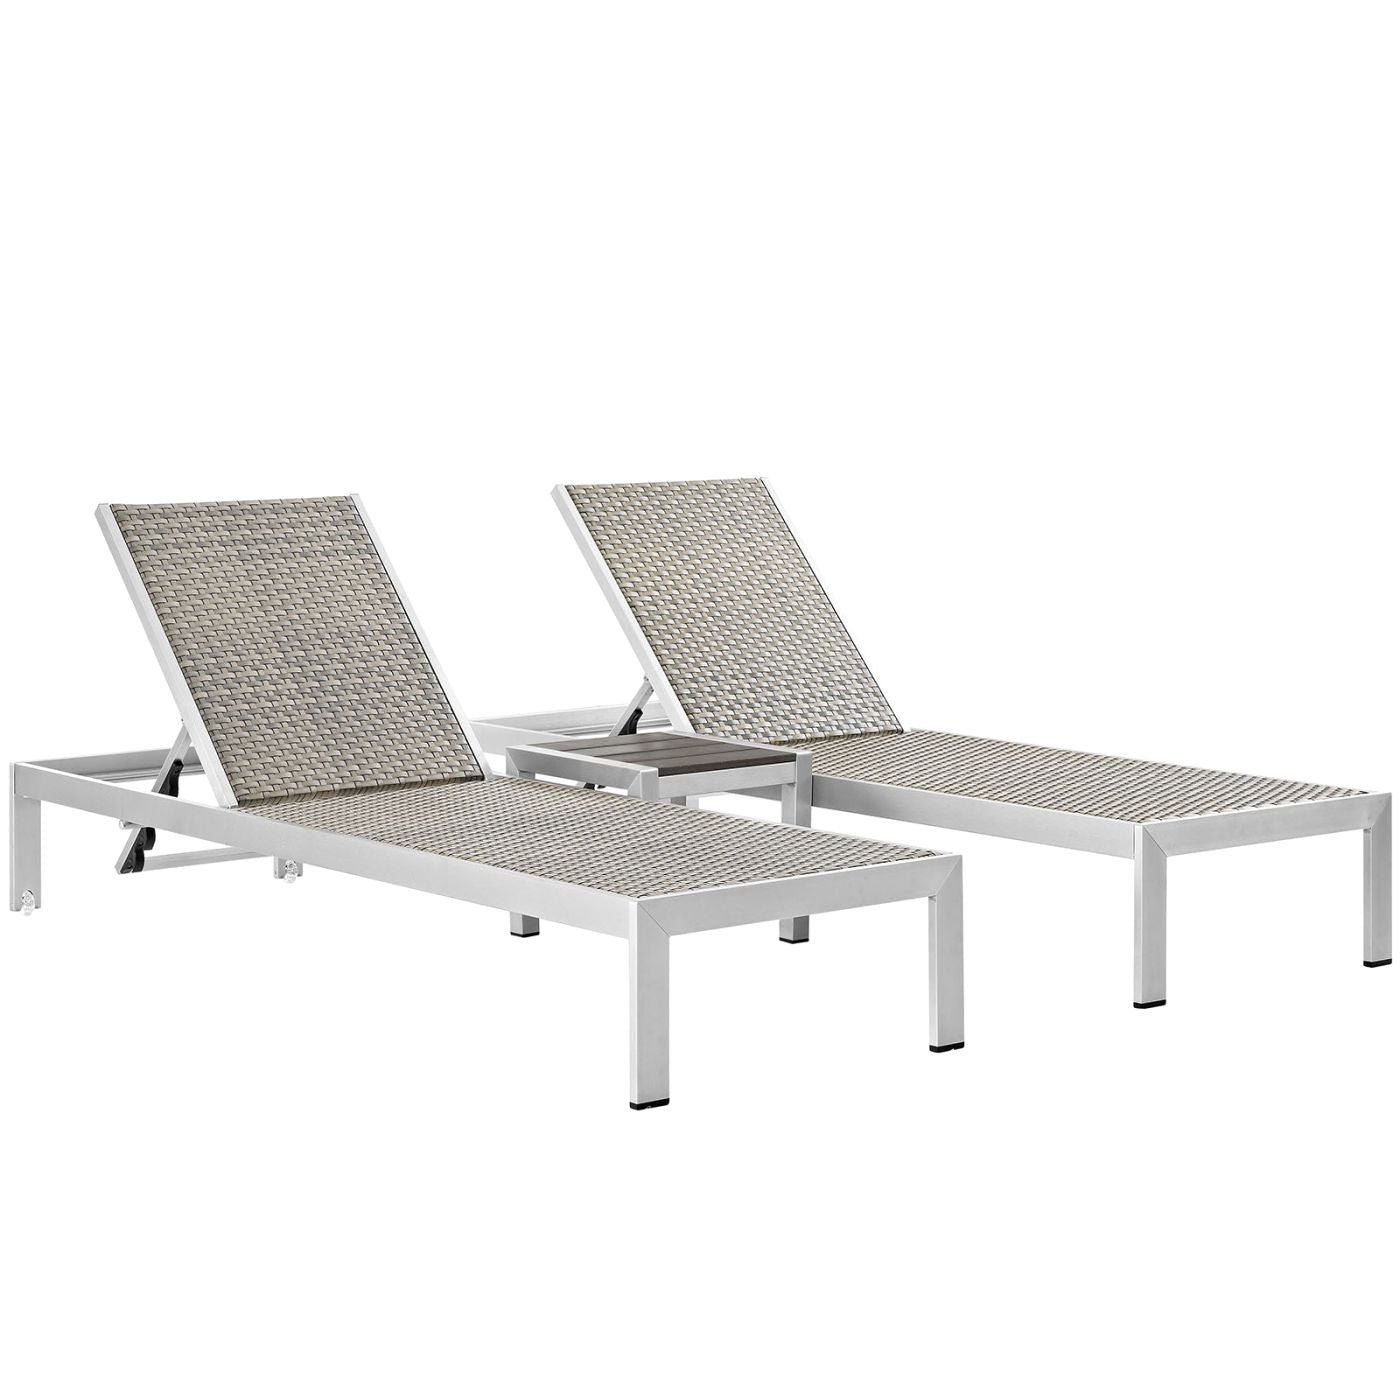 Shore 3 piece outdoor patio aluminum set silver gray lounge chair